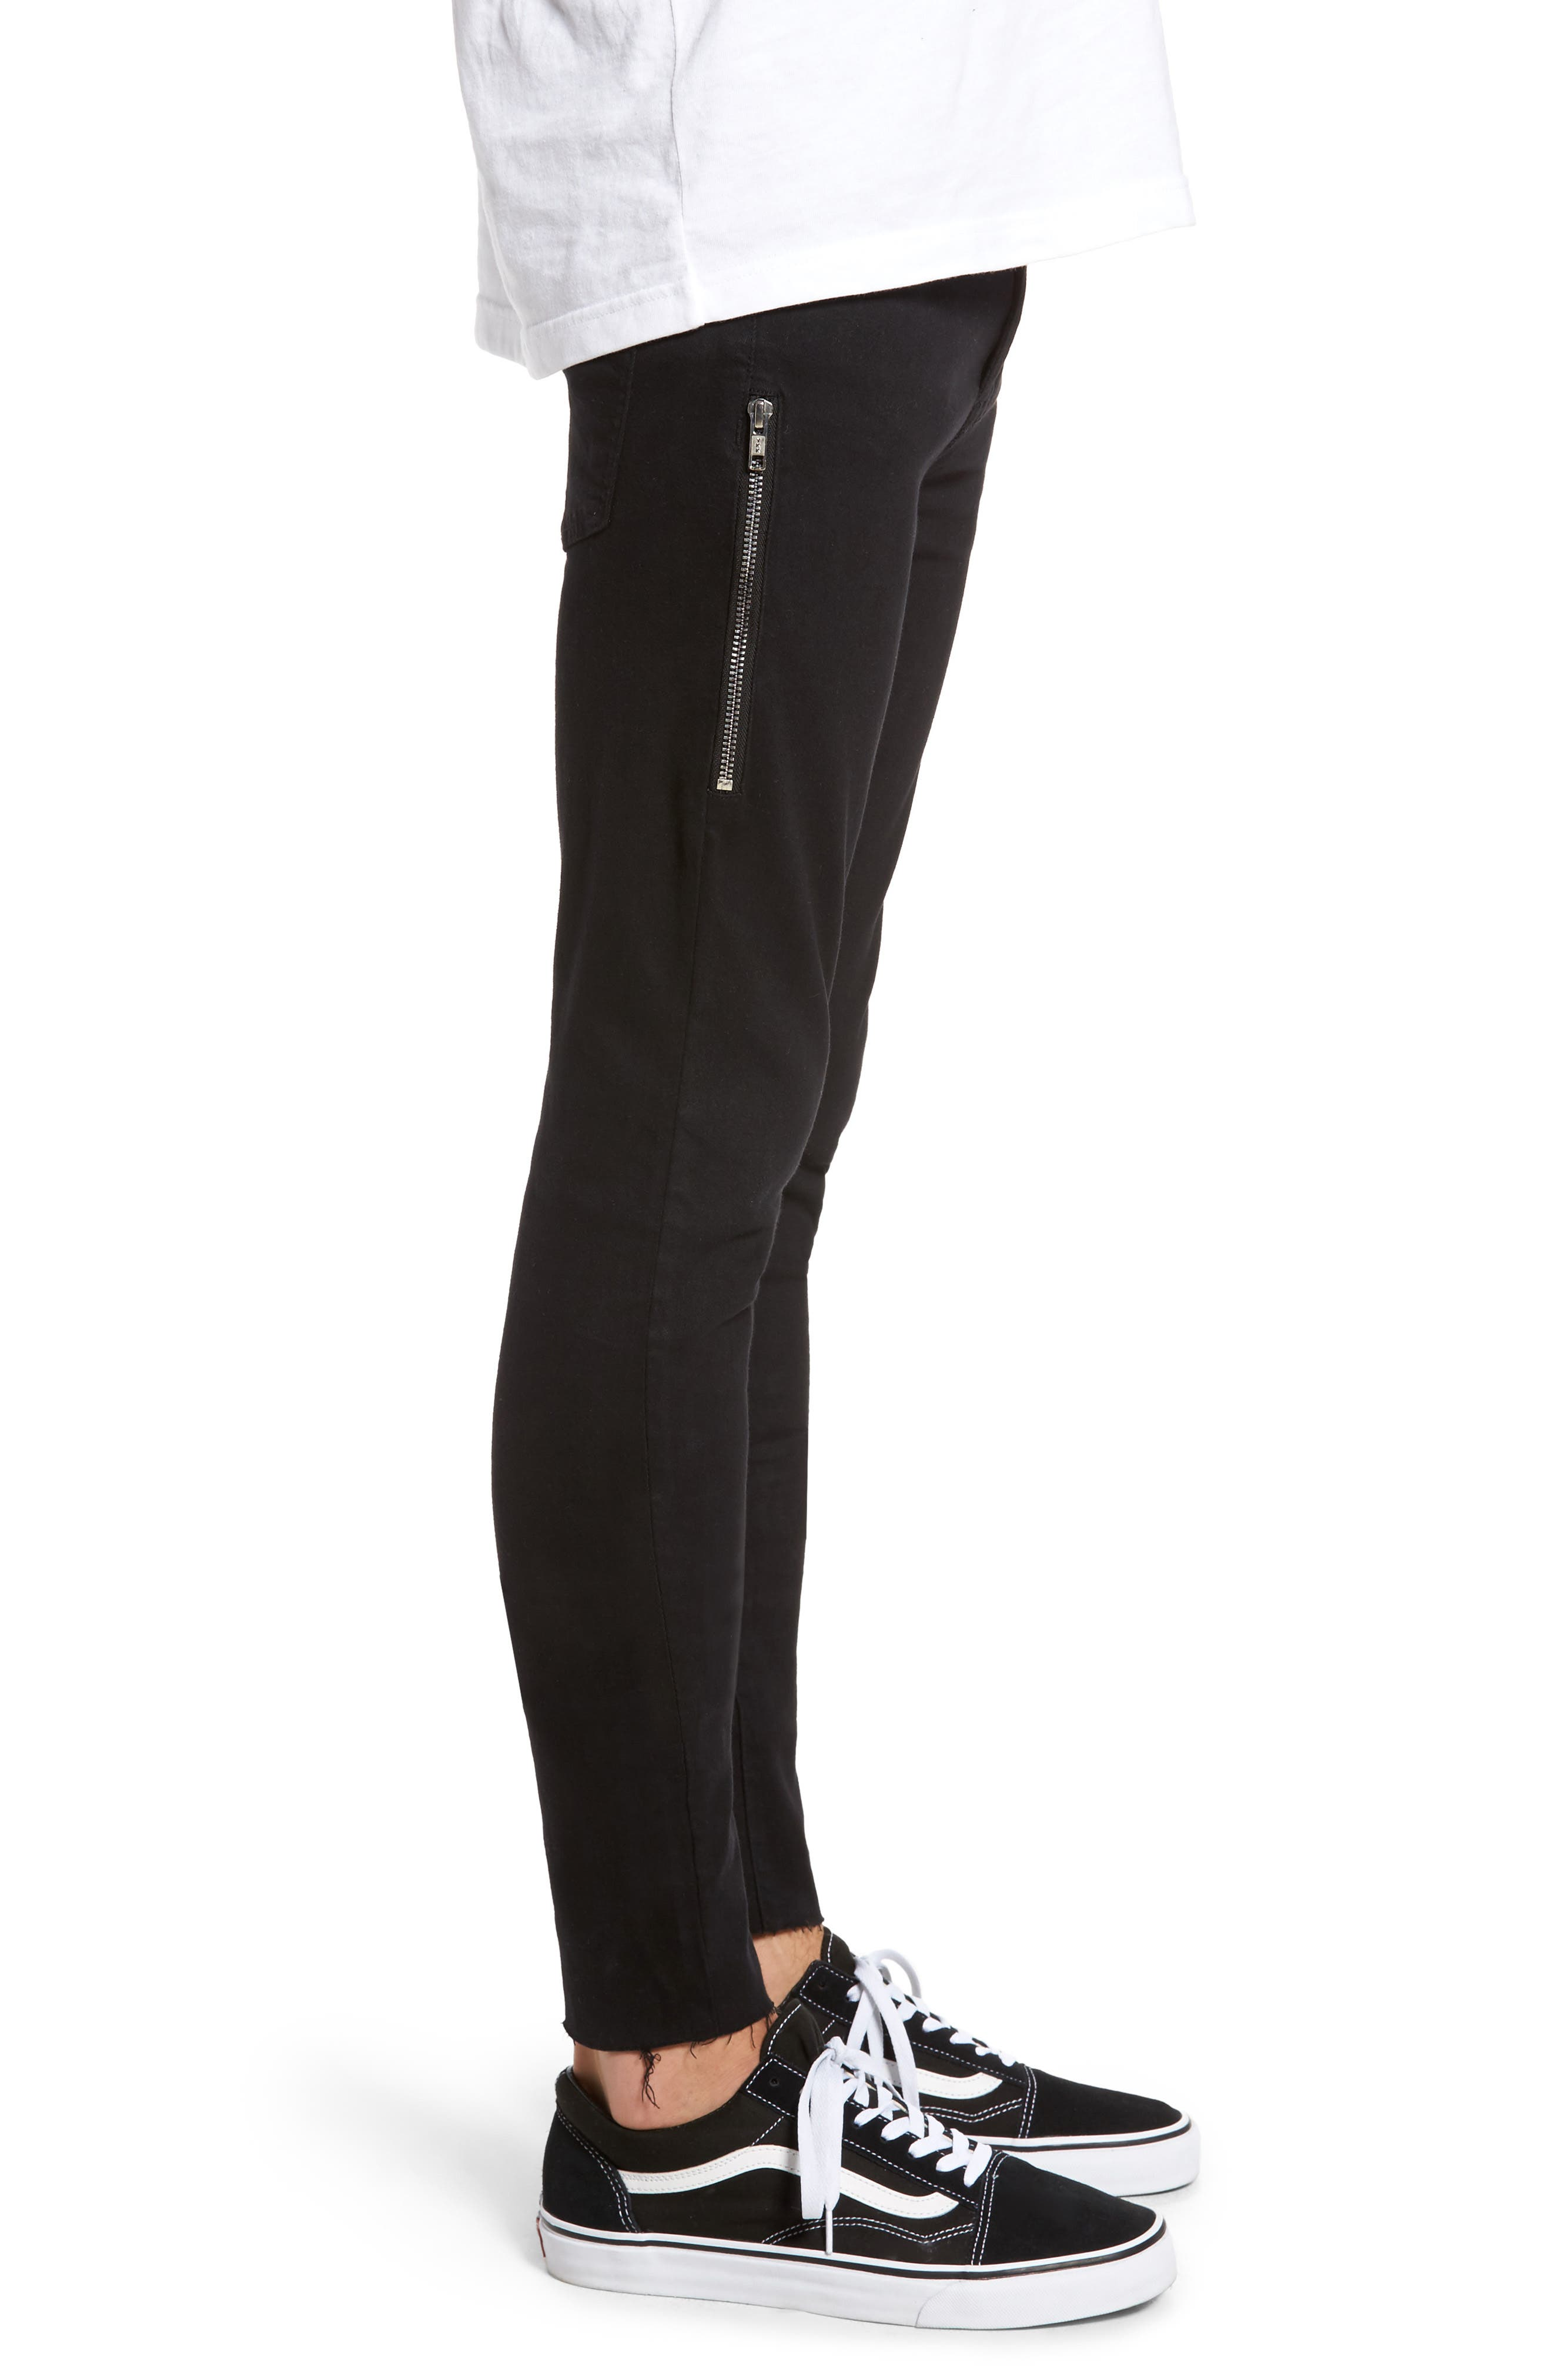 Leroy Skinny Fit Jeans,                             Alternate thumbnail 3, color,                             001